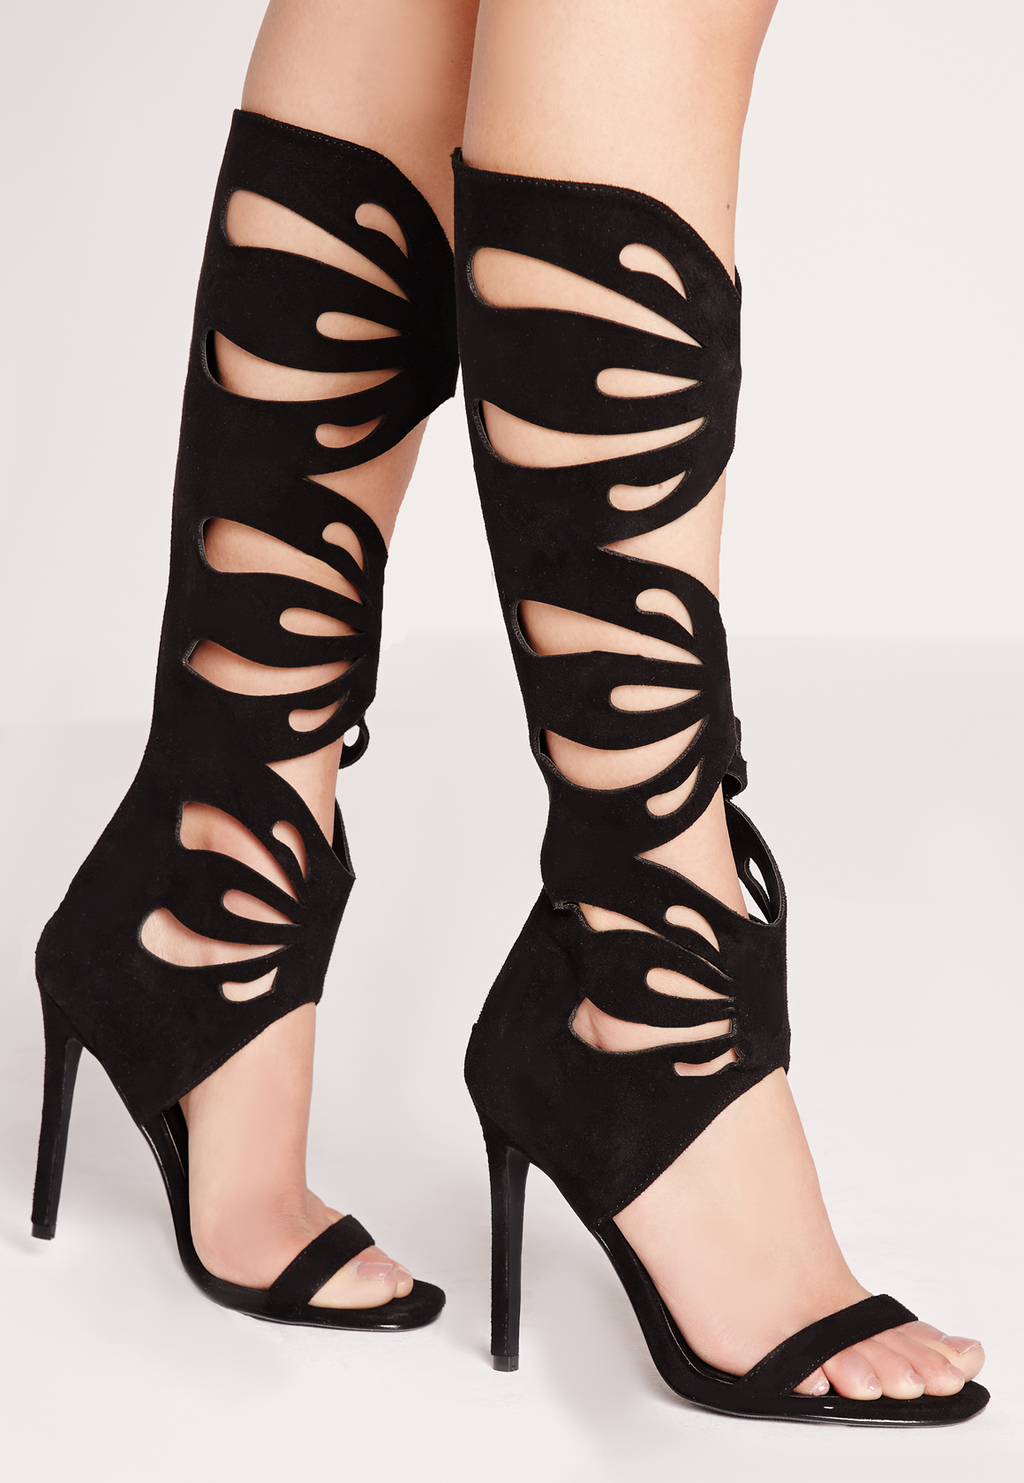 Laser Cut Knee High Gladiator Sandals Black, Black - predominant colour: black; occasions: evening, occasion; material: suede; heel height: high; ankle detail: ankle strap; heel: stiletto; toe: open toe/peeptoe; style: gladiators; finish: plain; pattern: plain; season: s/s 2016; wardrobe: event